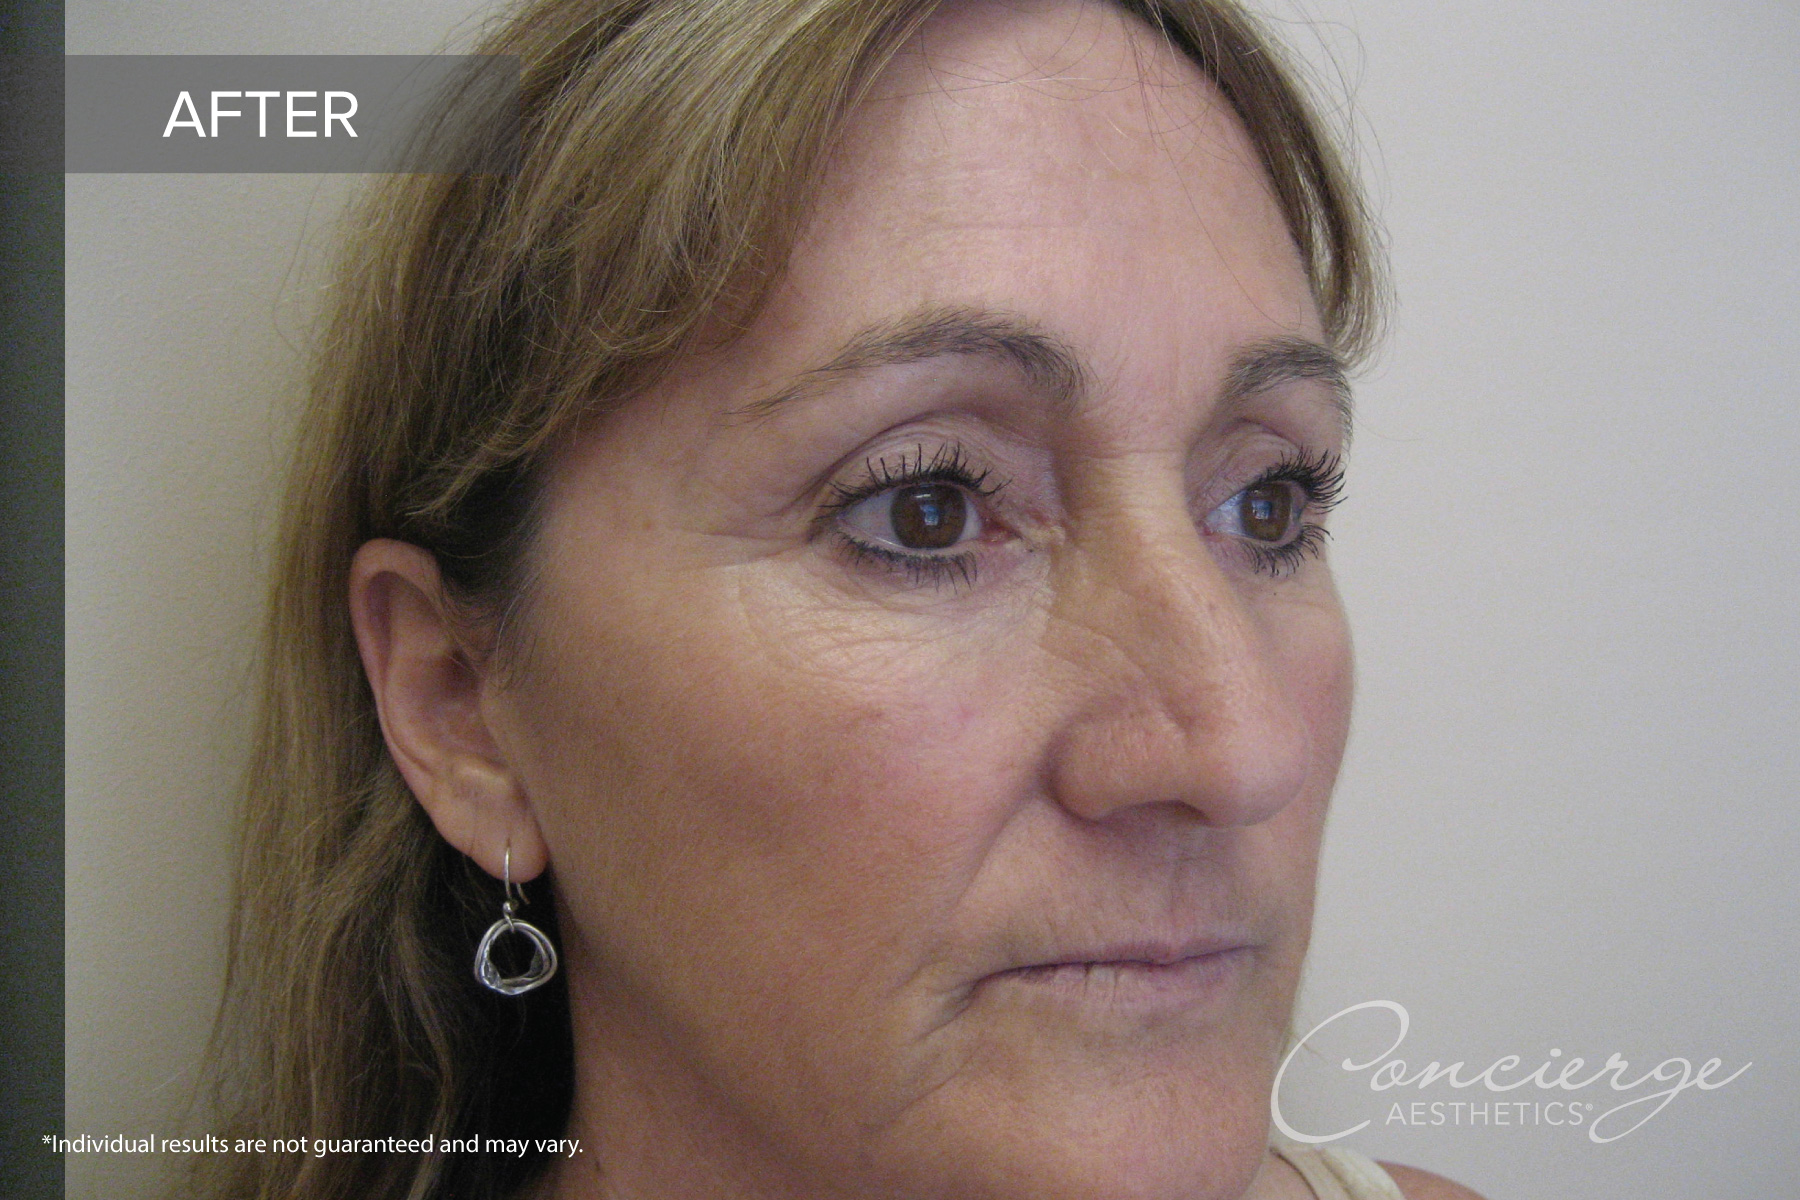 Juvéderm Ultra and Botox Cosmetic - Before and After Photos